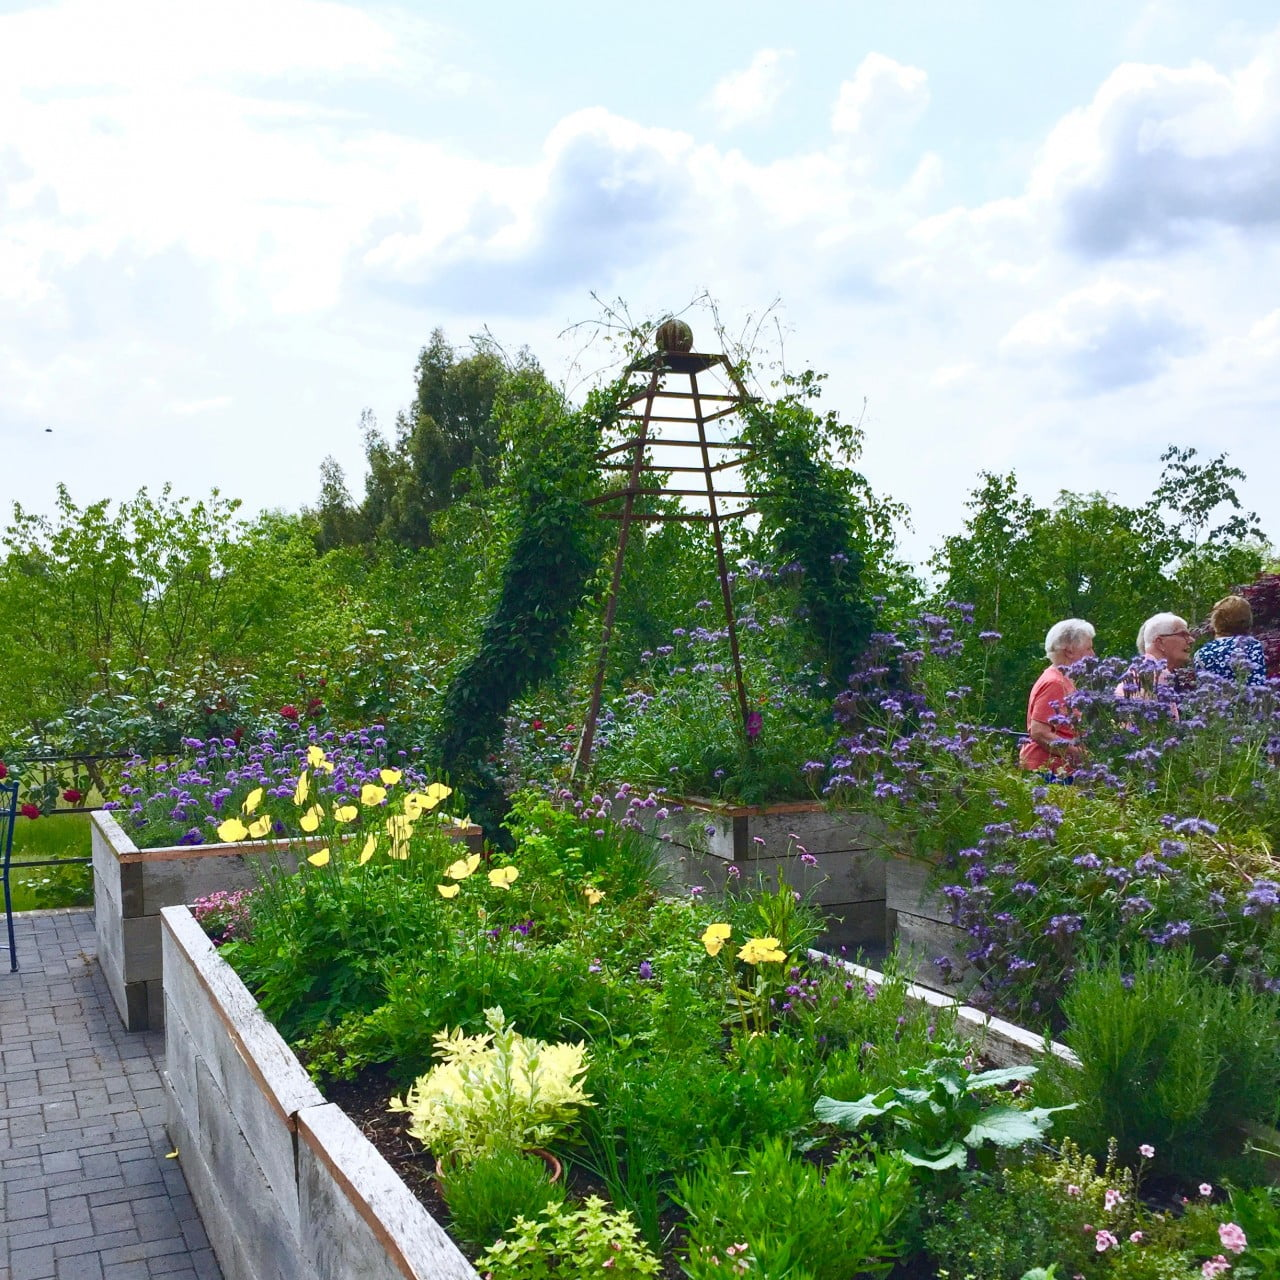 This is the cutting garden with raised beds I designed for Jane. I also designed the great frames for climbers which have worked really well